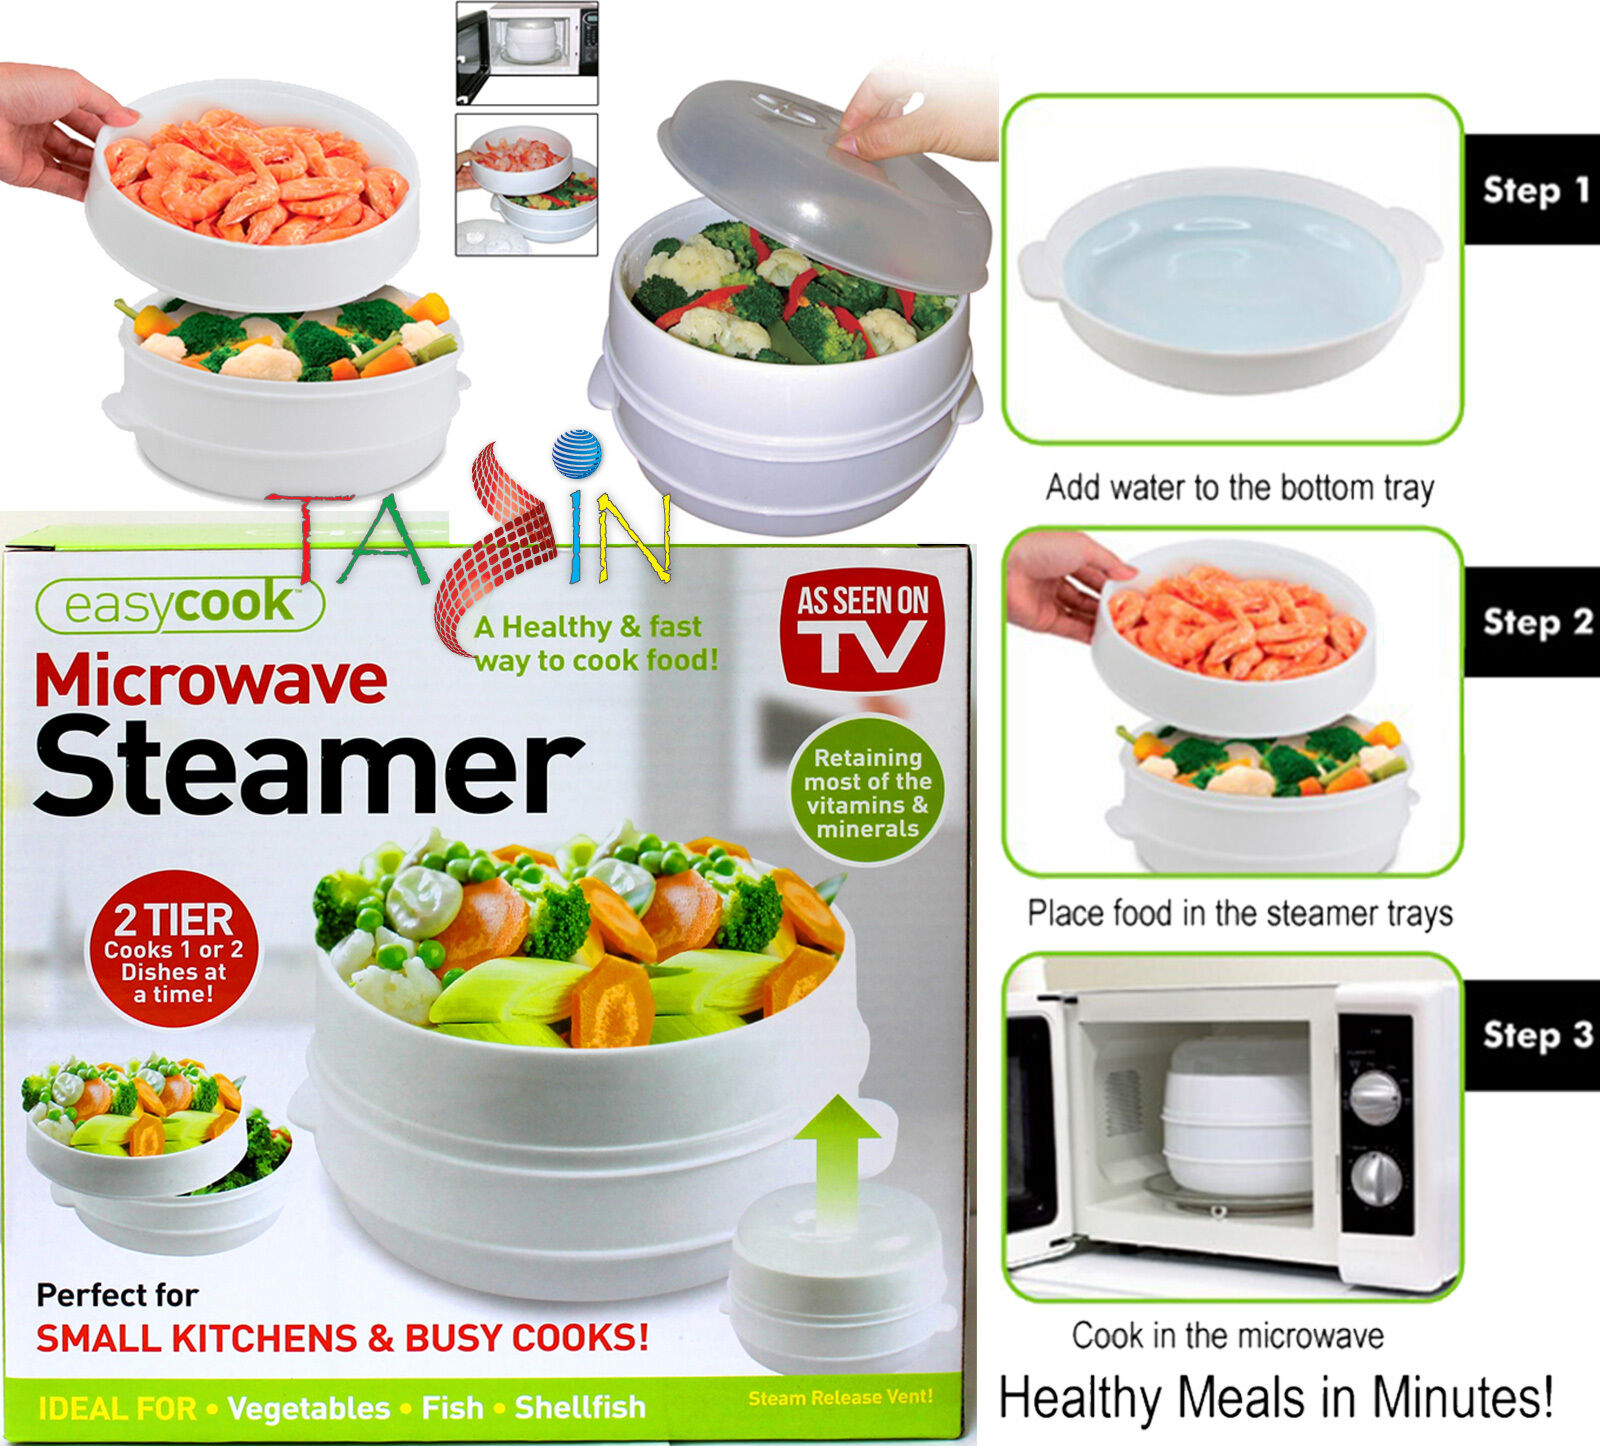 Microwave steamer 2 tier cooker vegetable fish pasta for Cooking fish in microwave